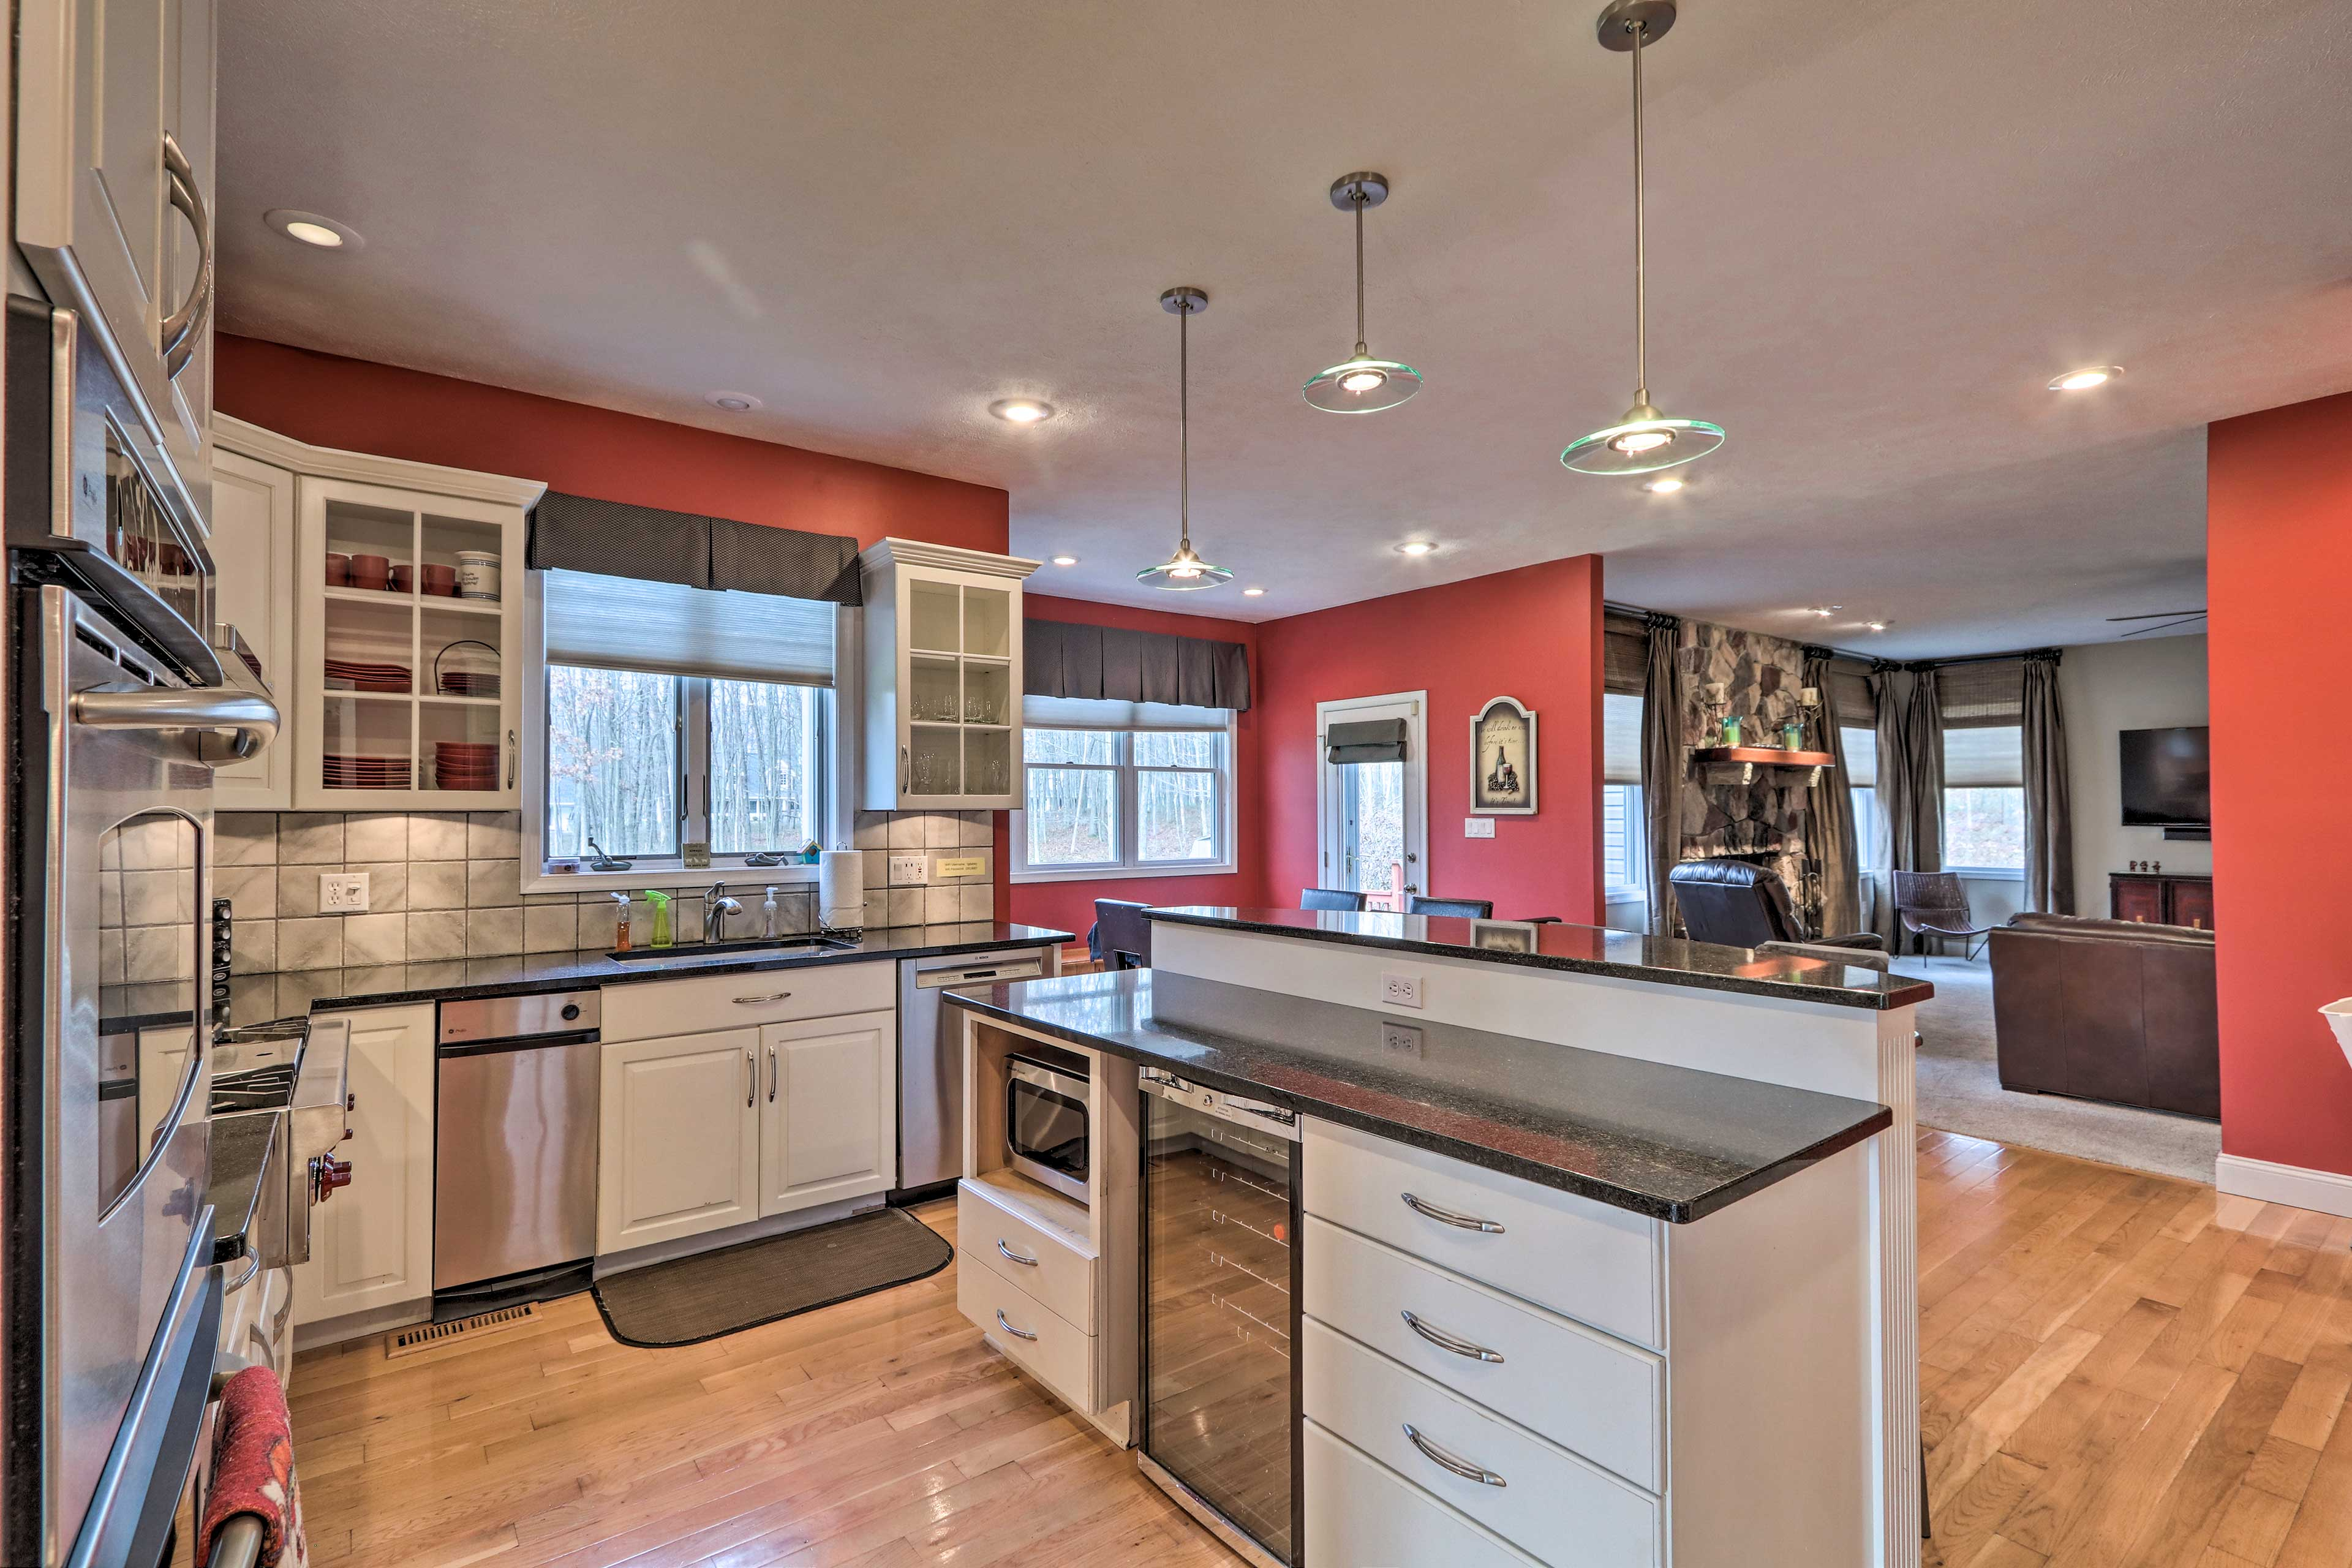 The fully equipped kitchen features everything you need for at-home cooking.